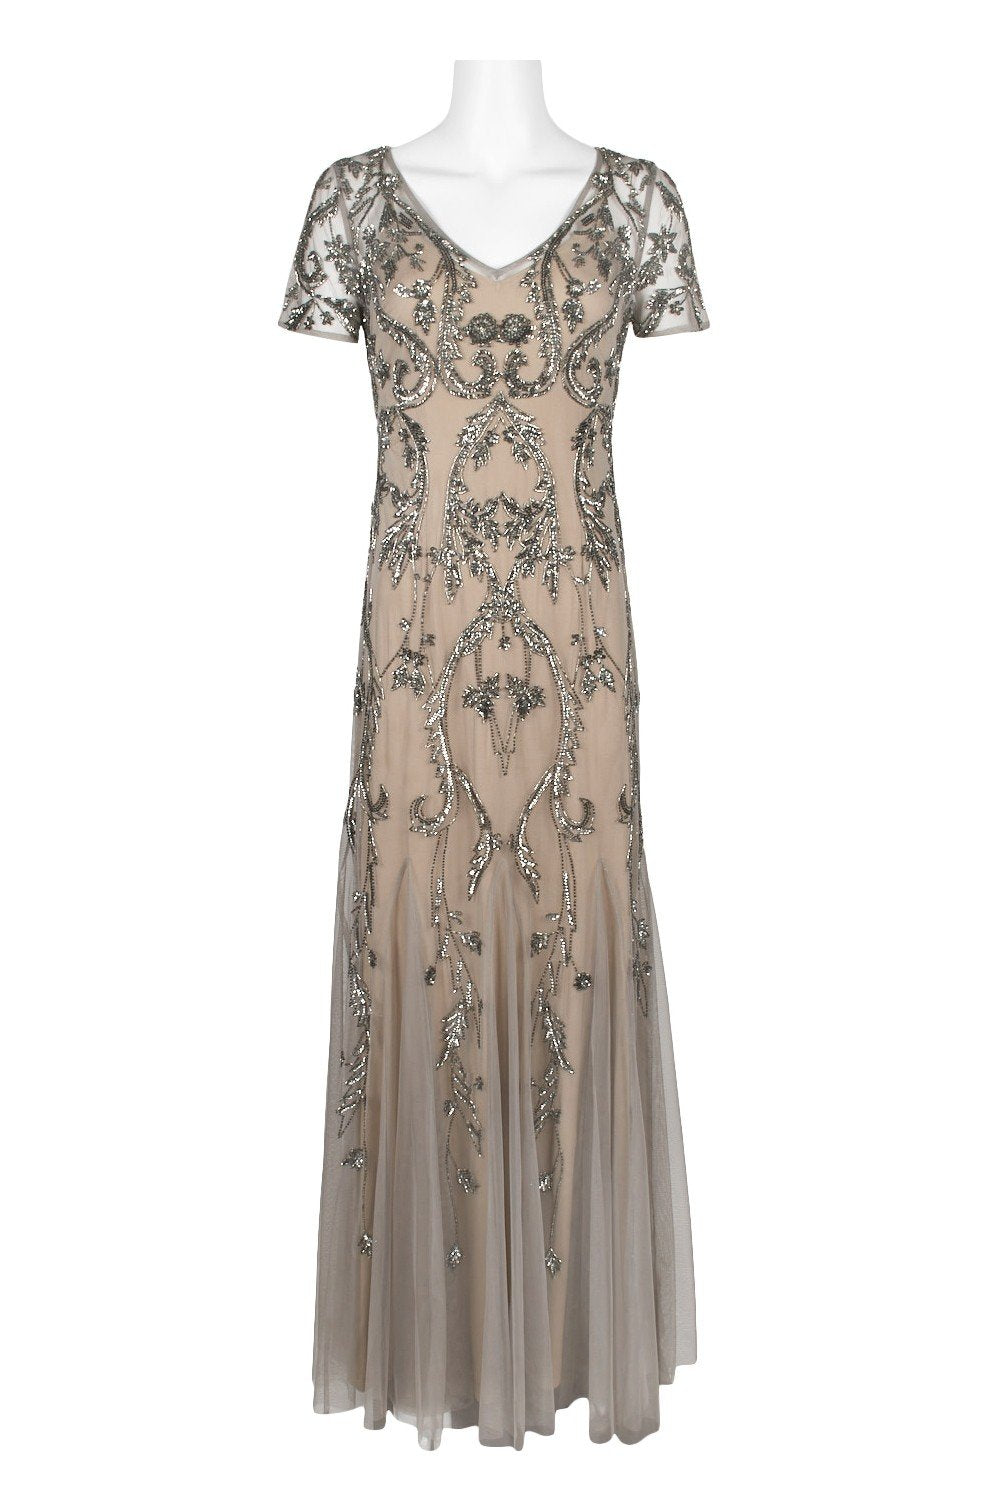 Adrianna Papell - AP1E204586 Embellished V-neck Trumpet Dress In Neutral